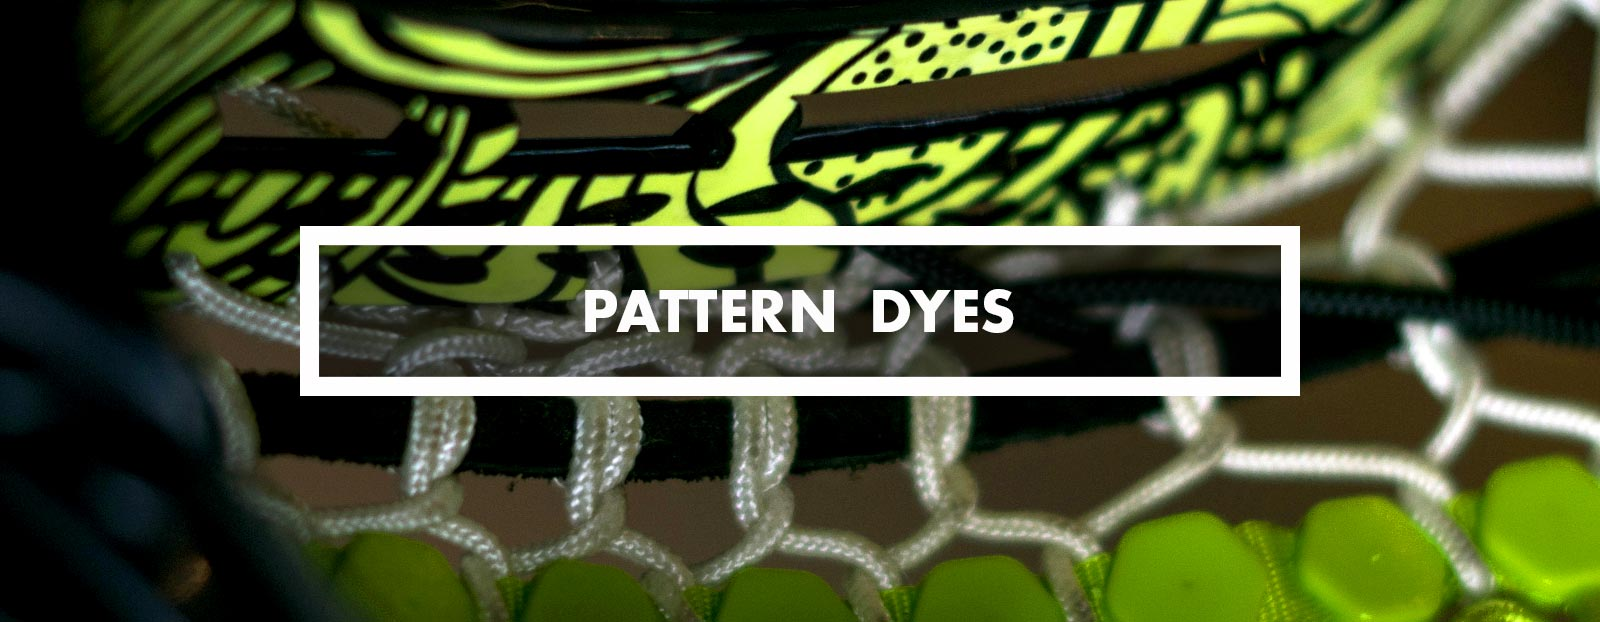 Category - pattern lacrosse dyes